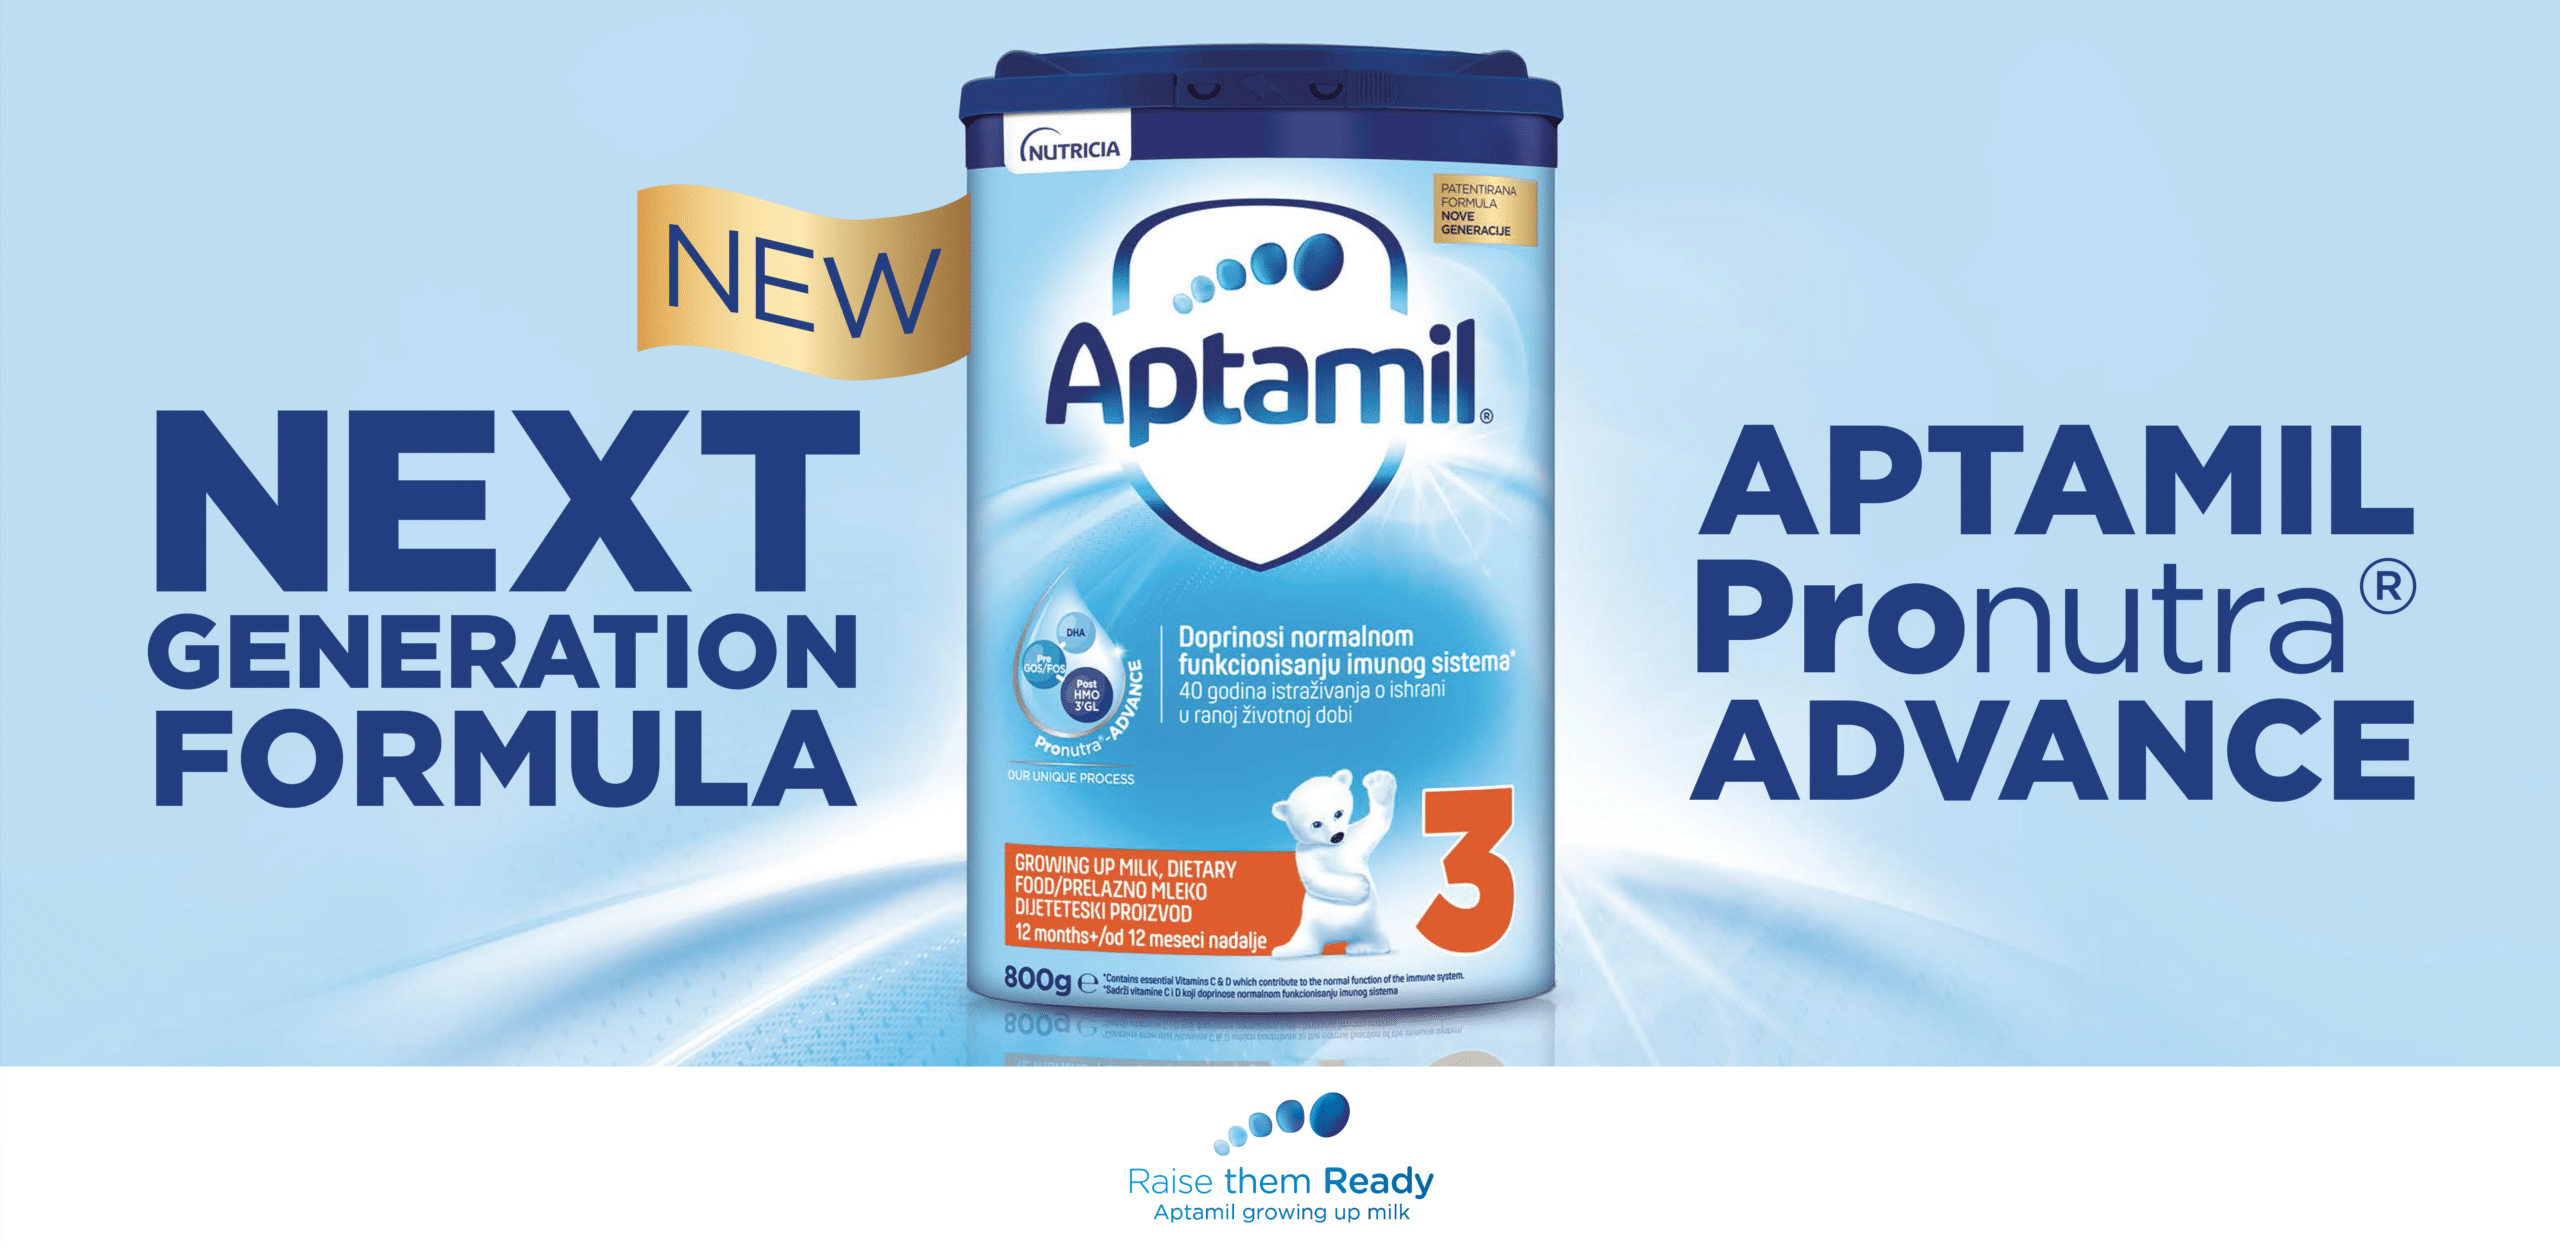 new Aptamil pronutra advance change